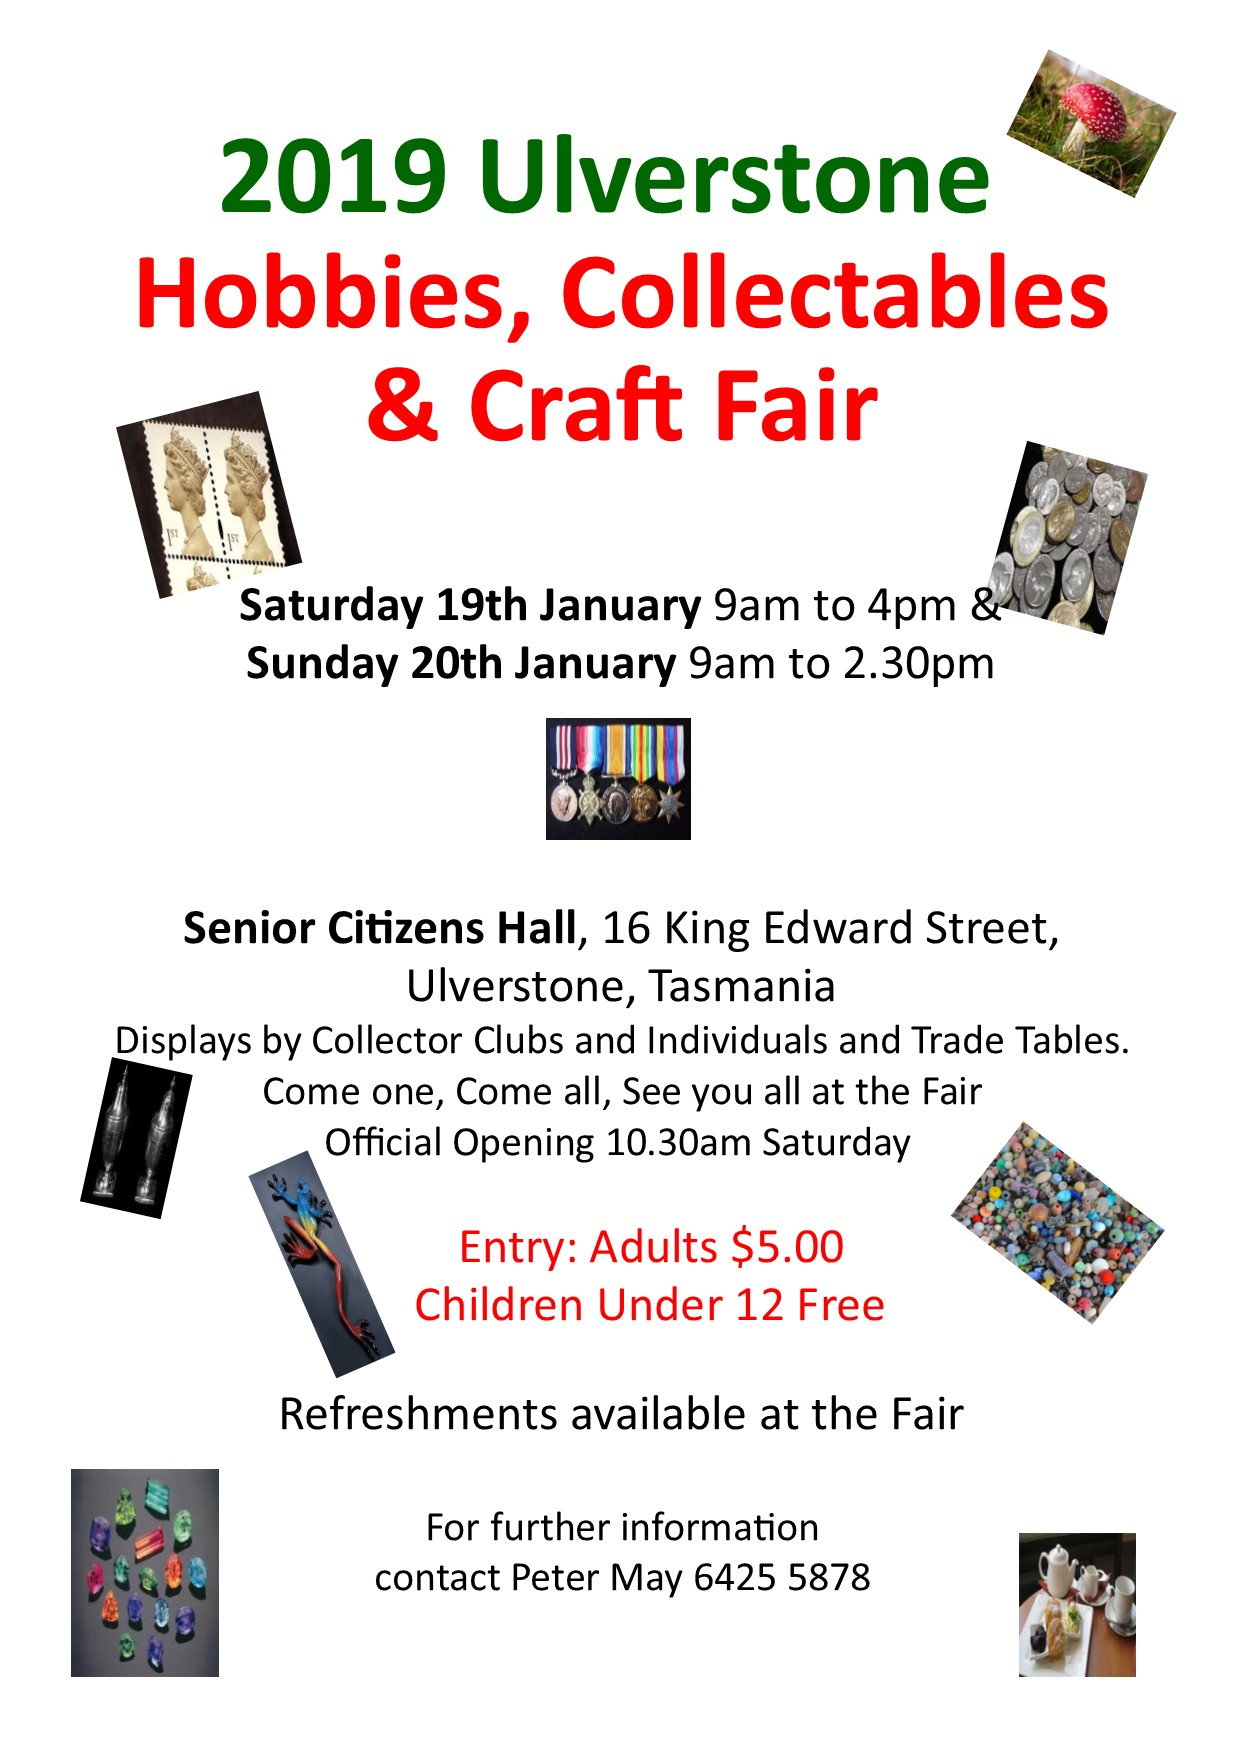 Hobbies collectables and craft fair 2019 portrait.jpg